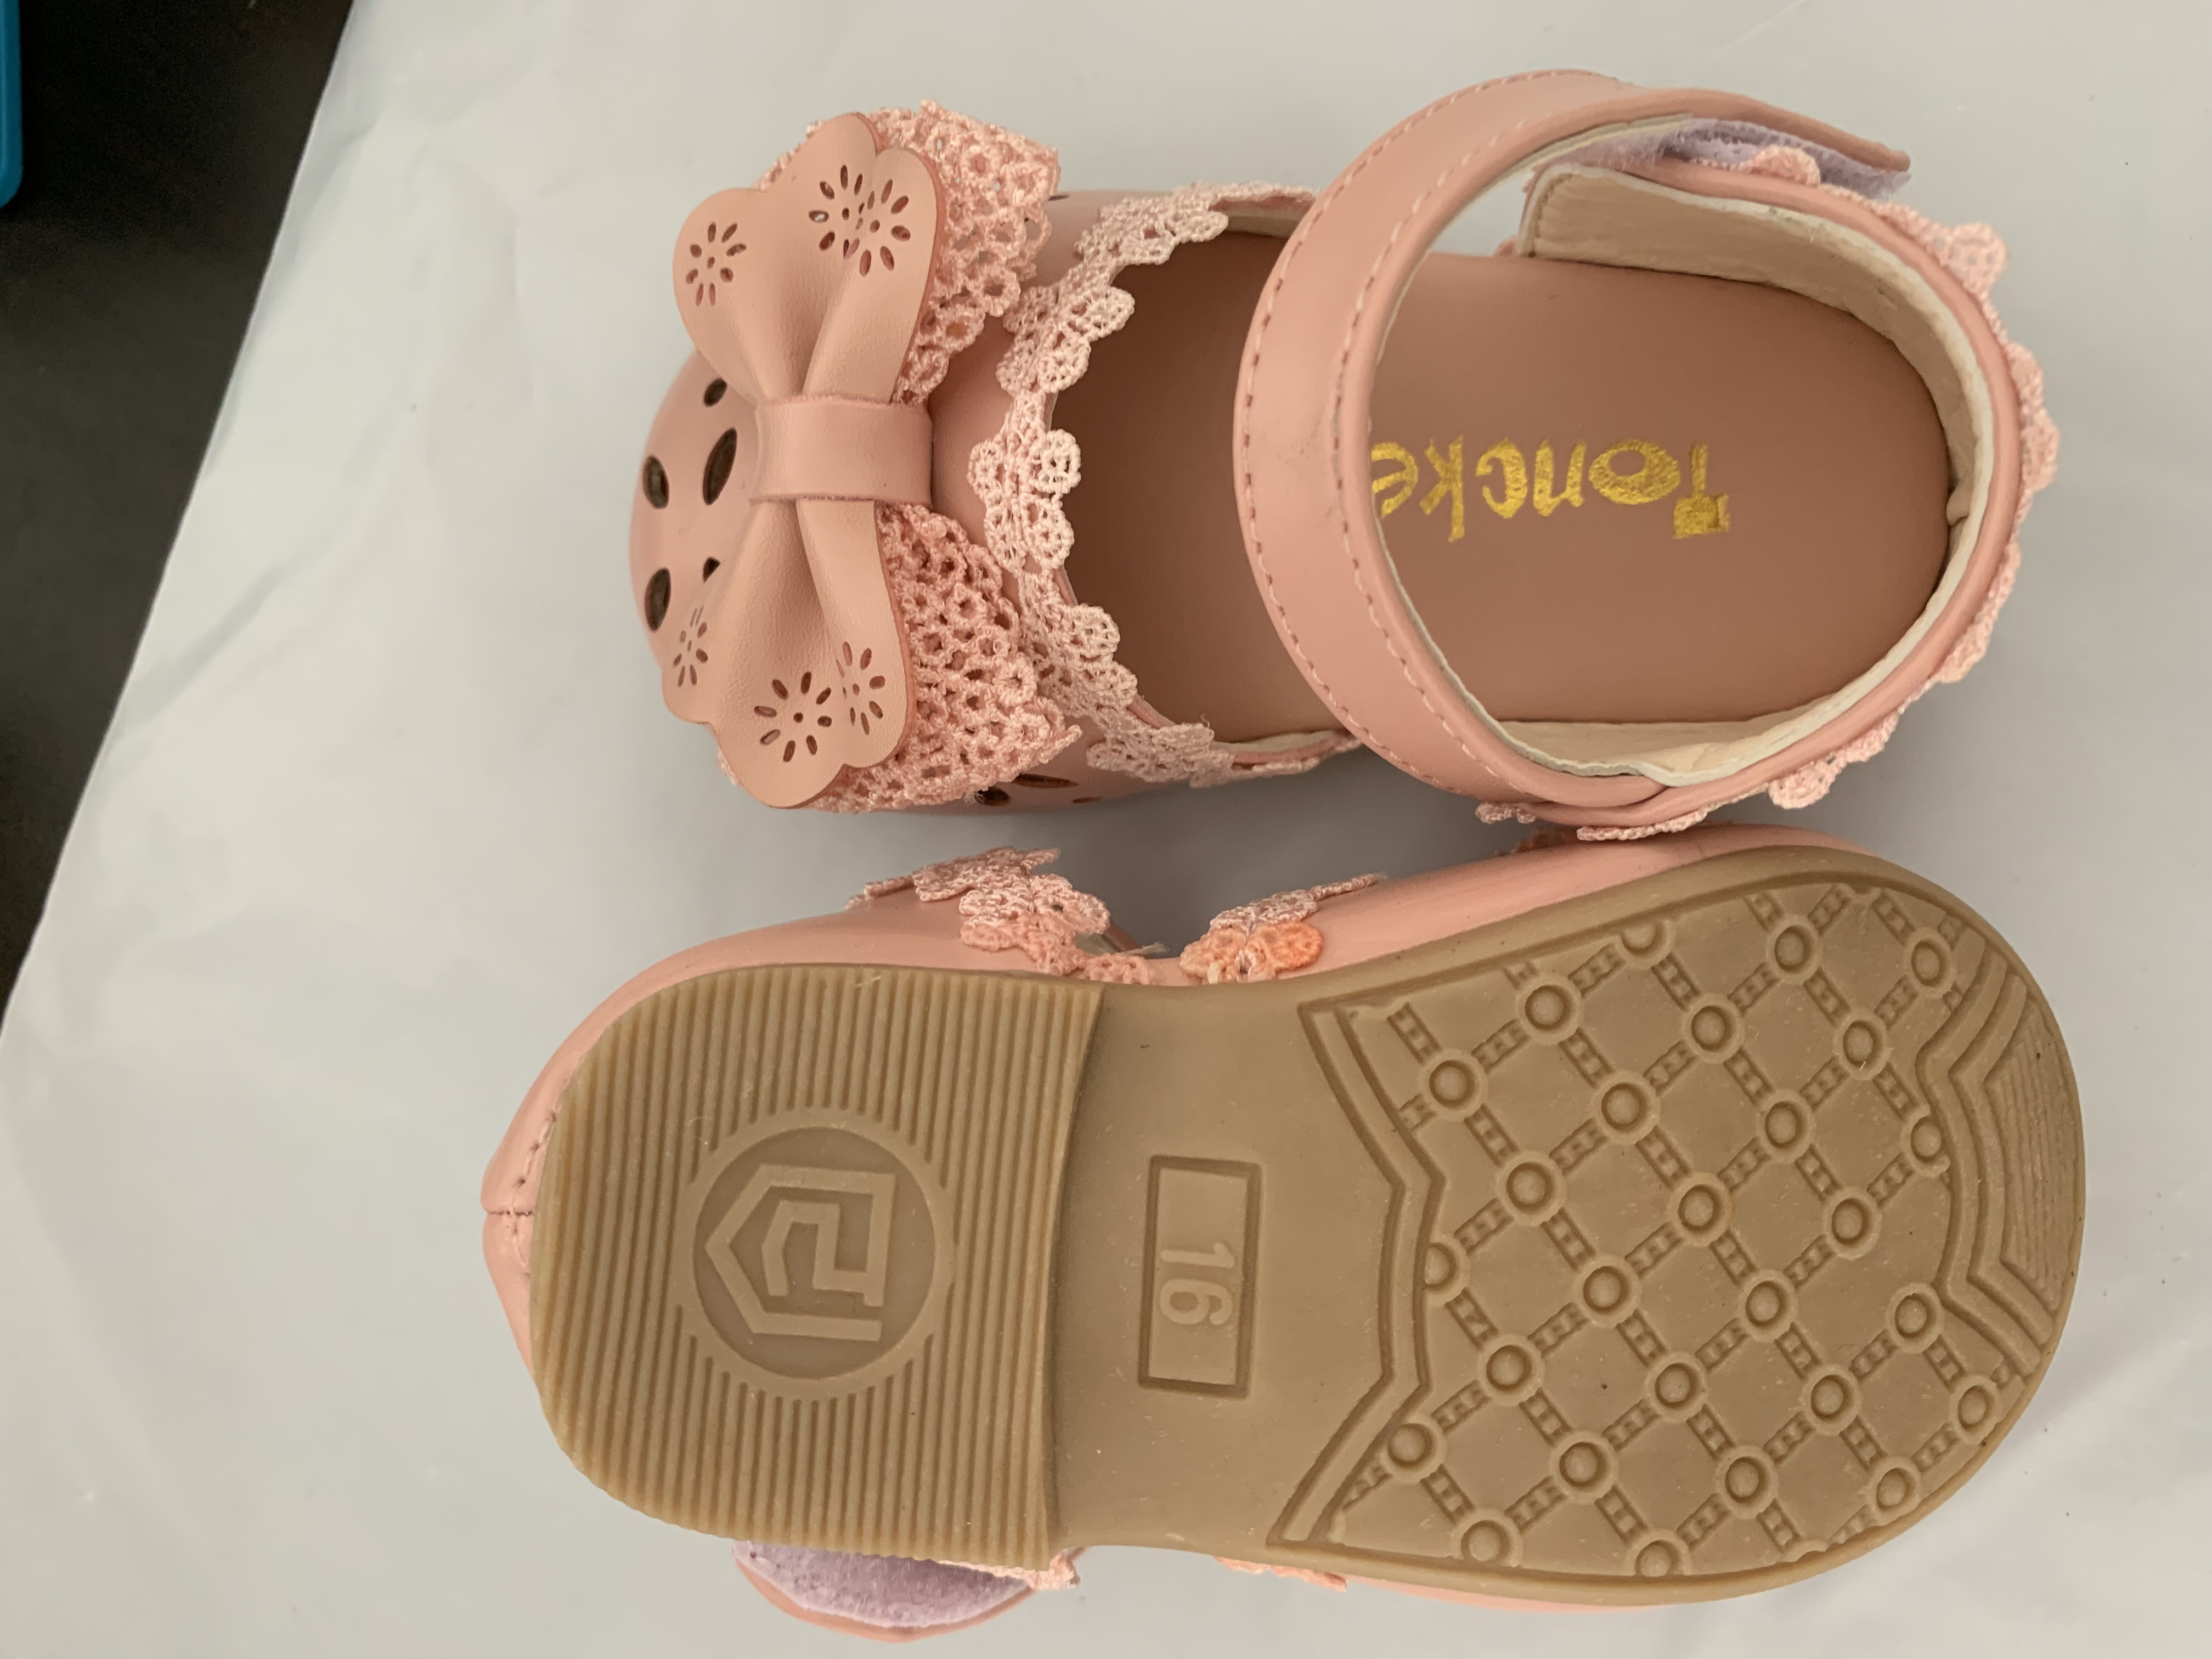 Newest Summer Kids Shoes 2020 Fashion Leathers Sweet Children Sandals For Girls Toddler Baby Breathable Hoolow Out Bow Shoes 6